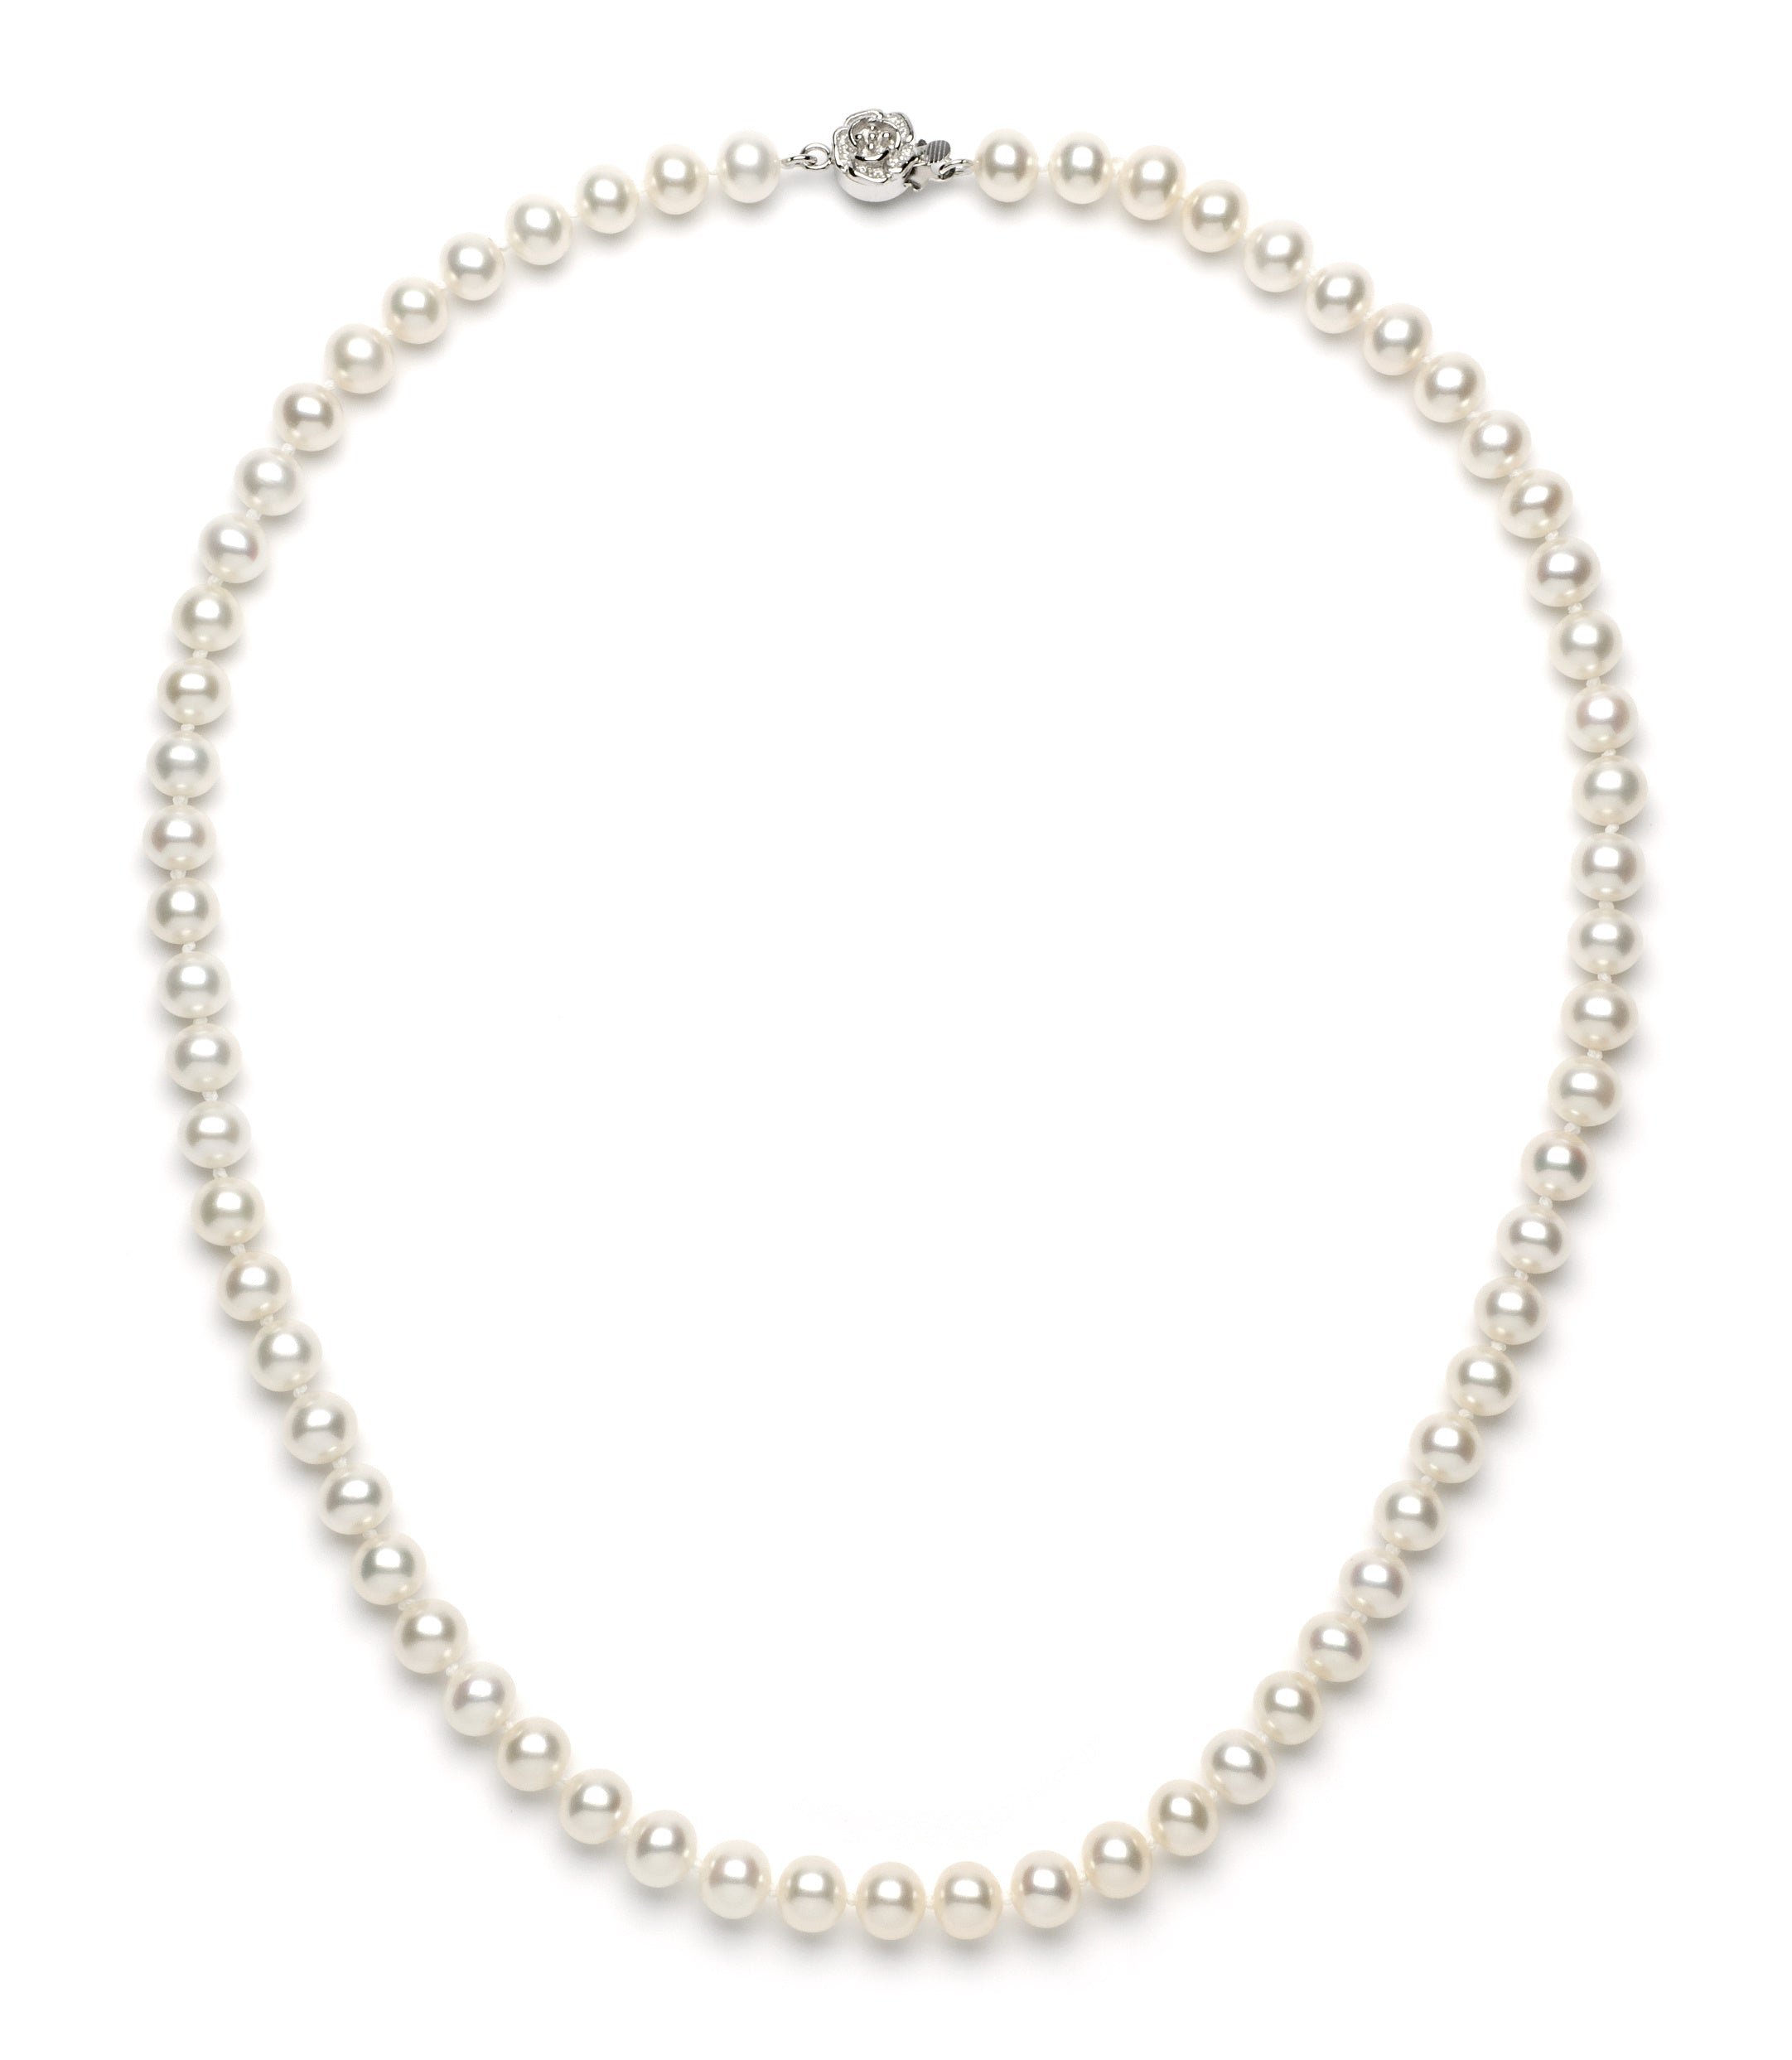 Necklace/Earrings Set 6.0-7.0 mm White Freshwater Pearls